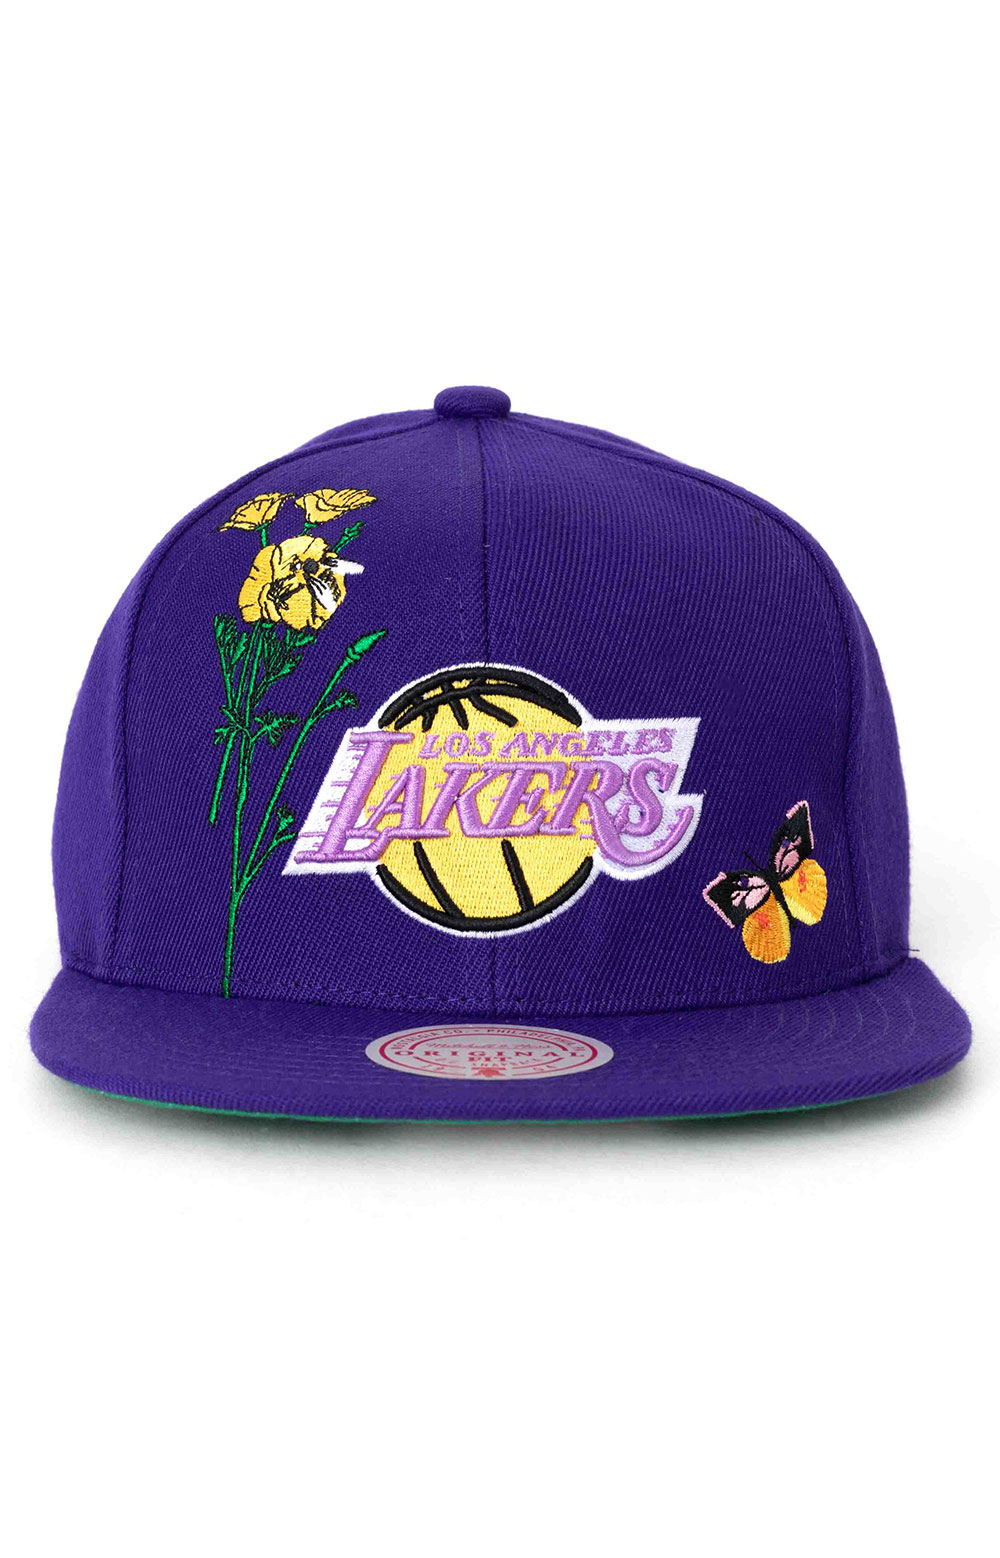 State Flower Snap-Back Hat - Lakers 2